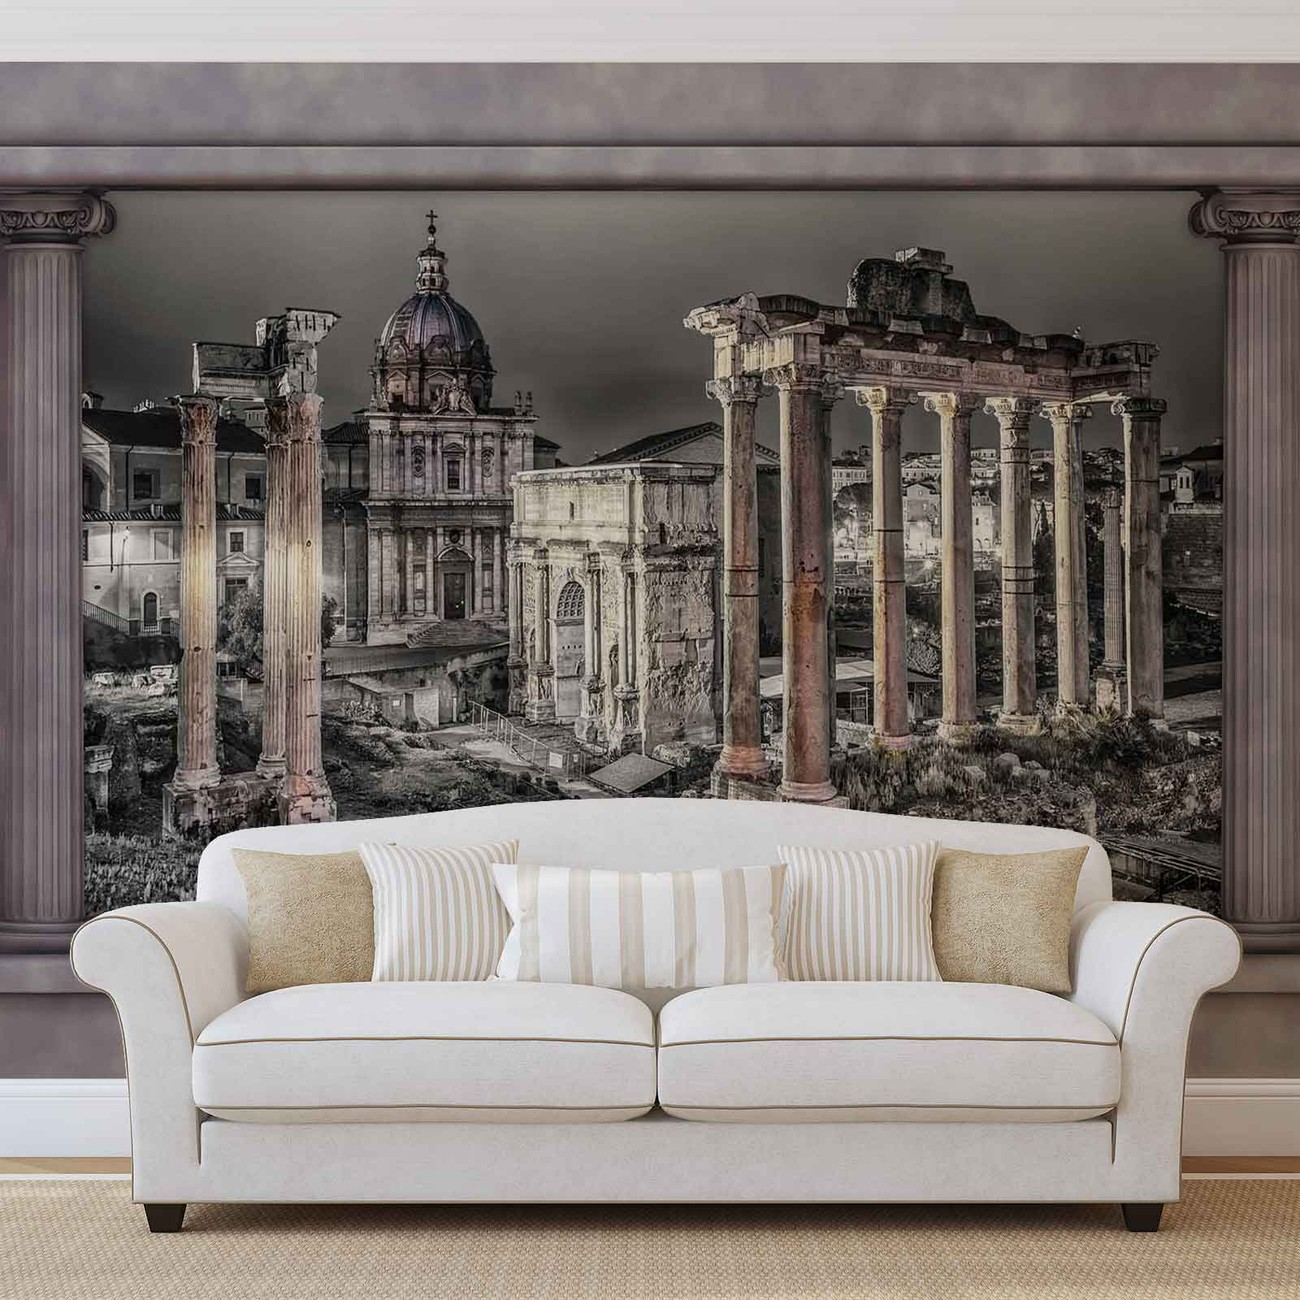 ruine rome ville vue de la fen tre poster mural papier. Black Bedroom Furniture Sets. Home Design Ideas